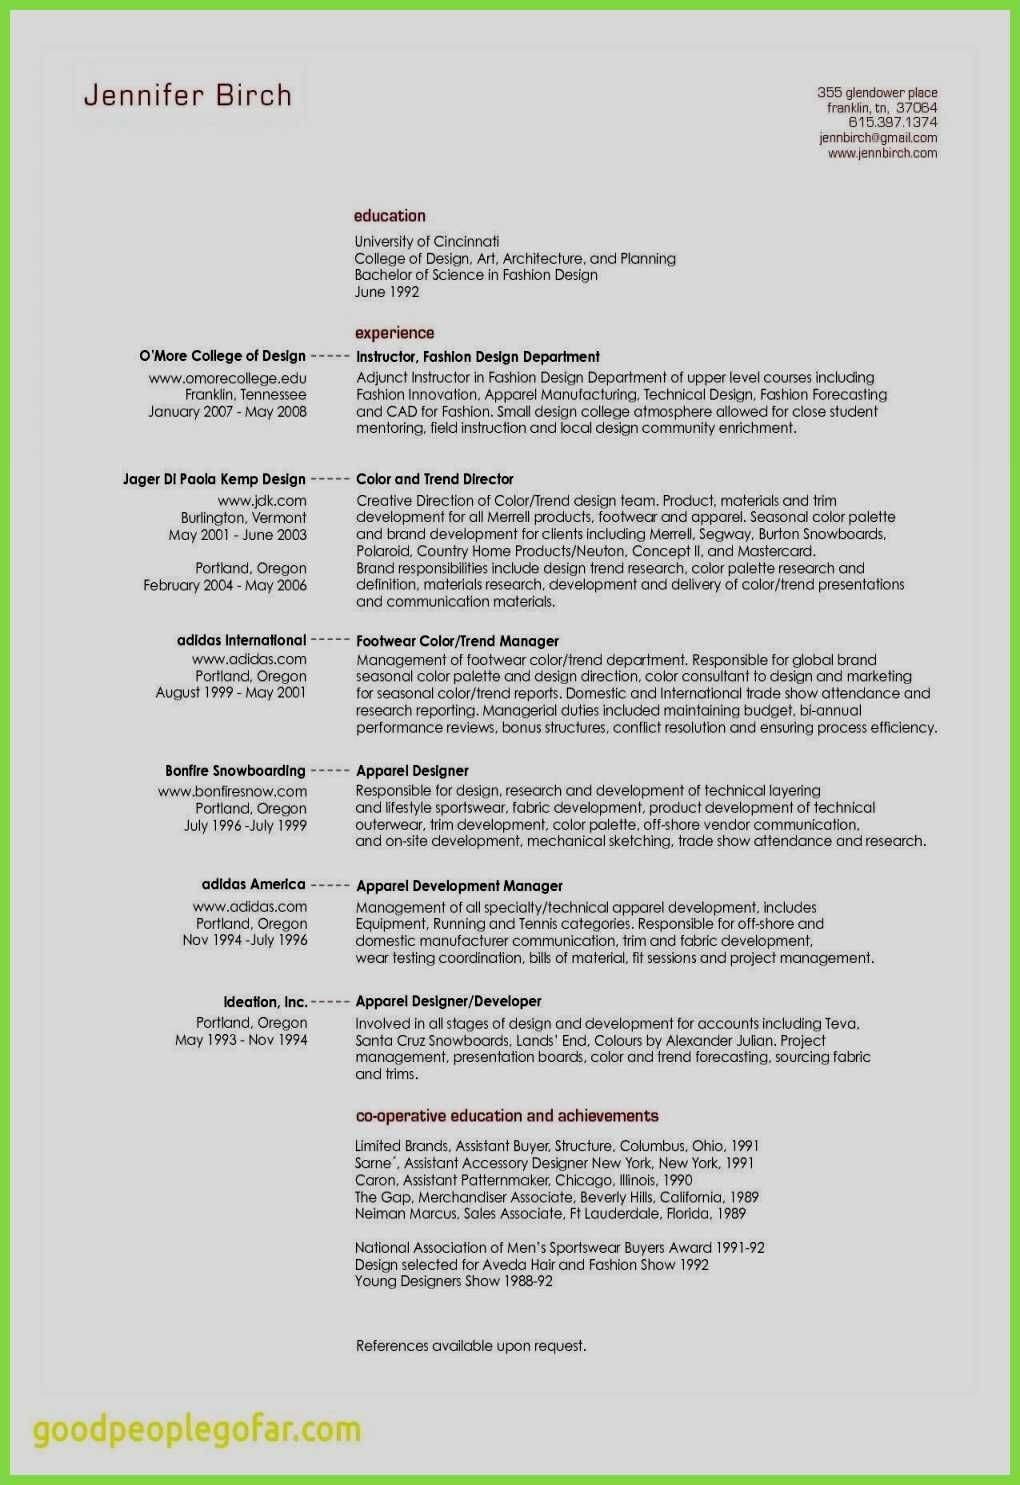 75 Awesome Photos Of Resume Examples Not Much Experience Resume Examples Sample Resume Format Resume